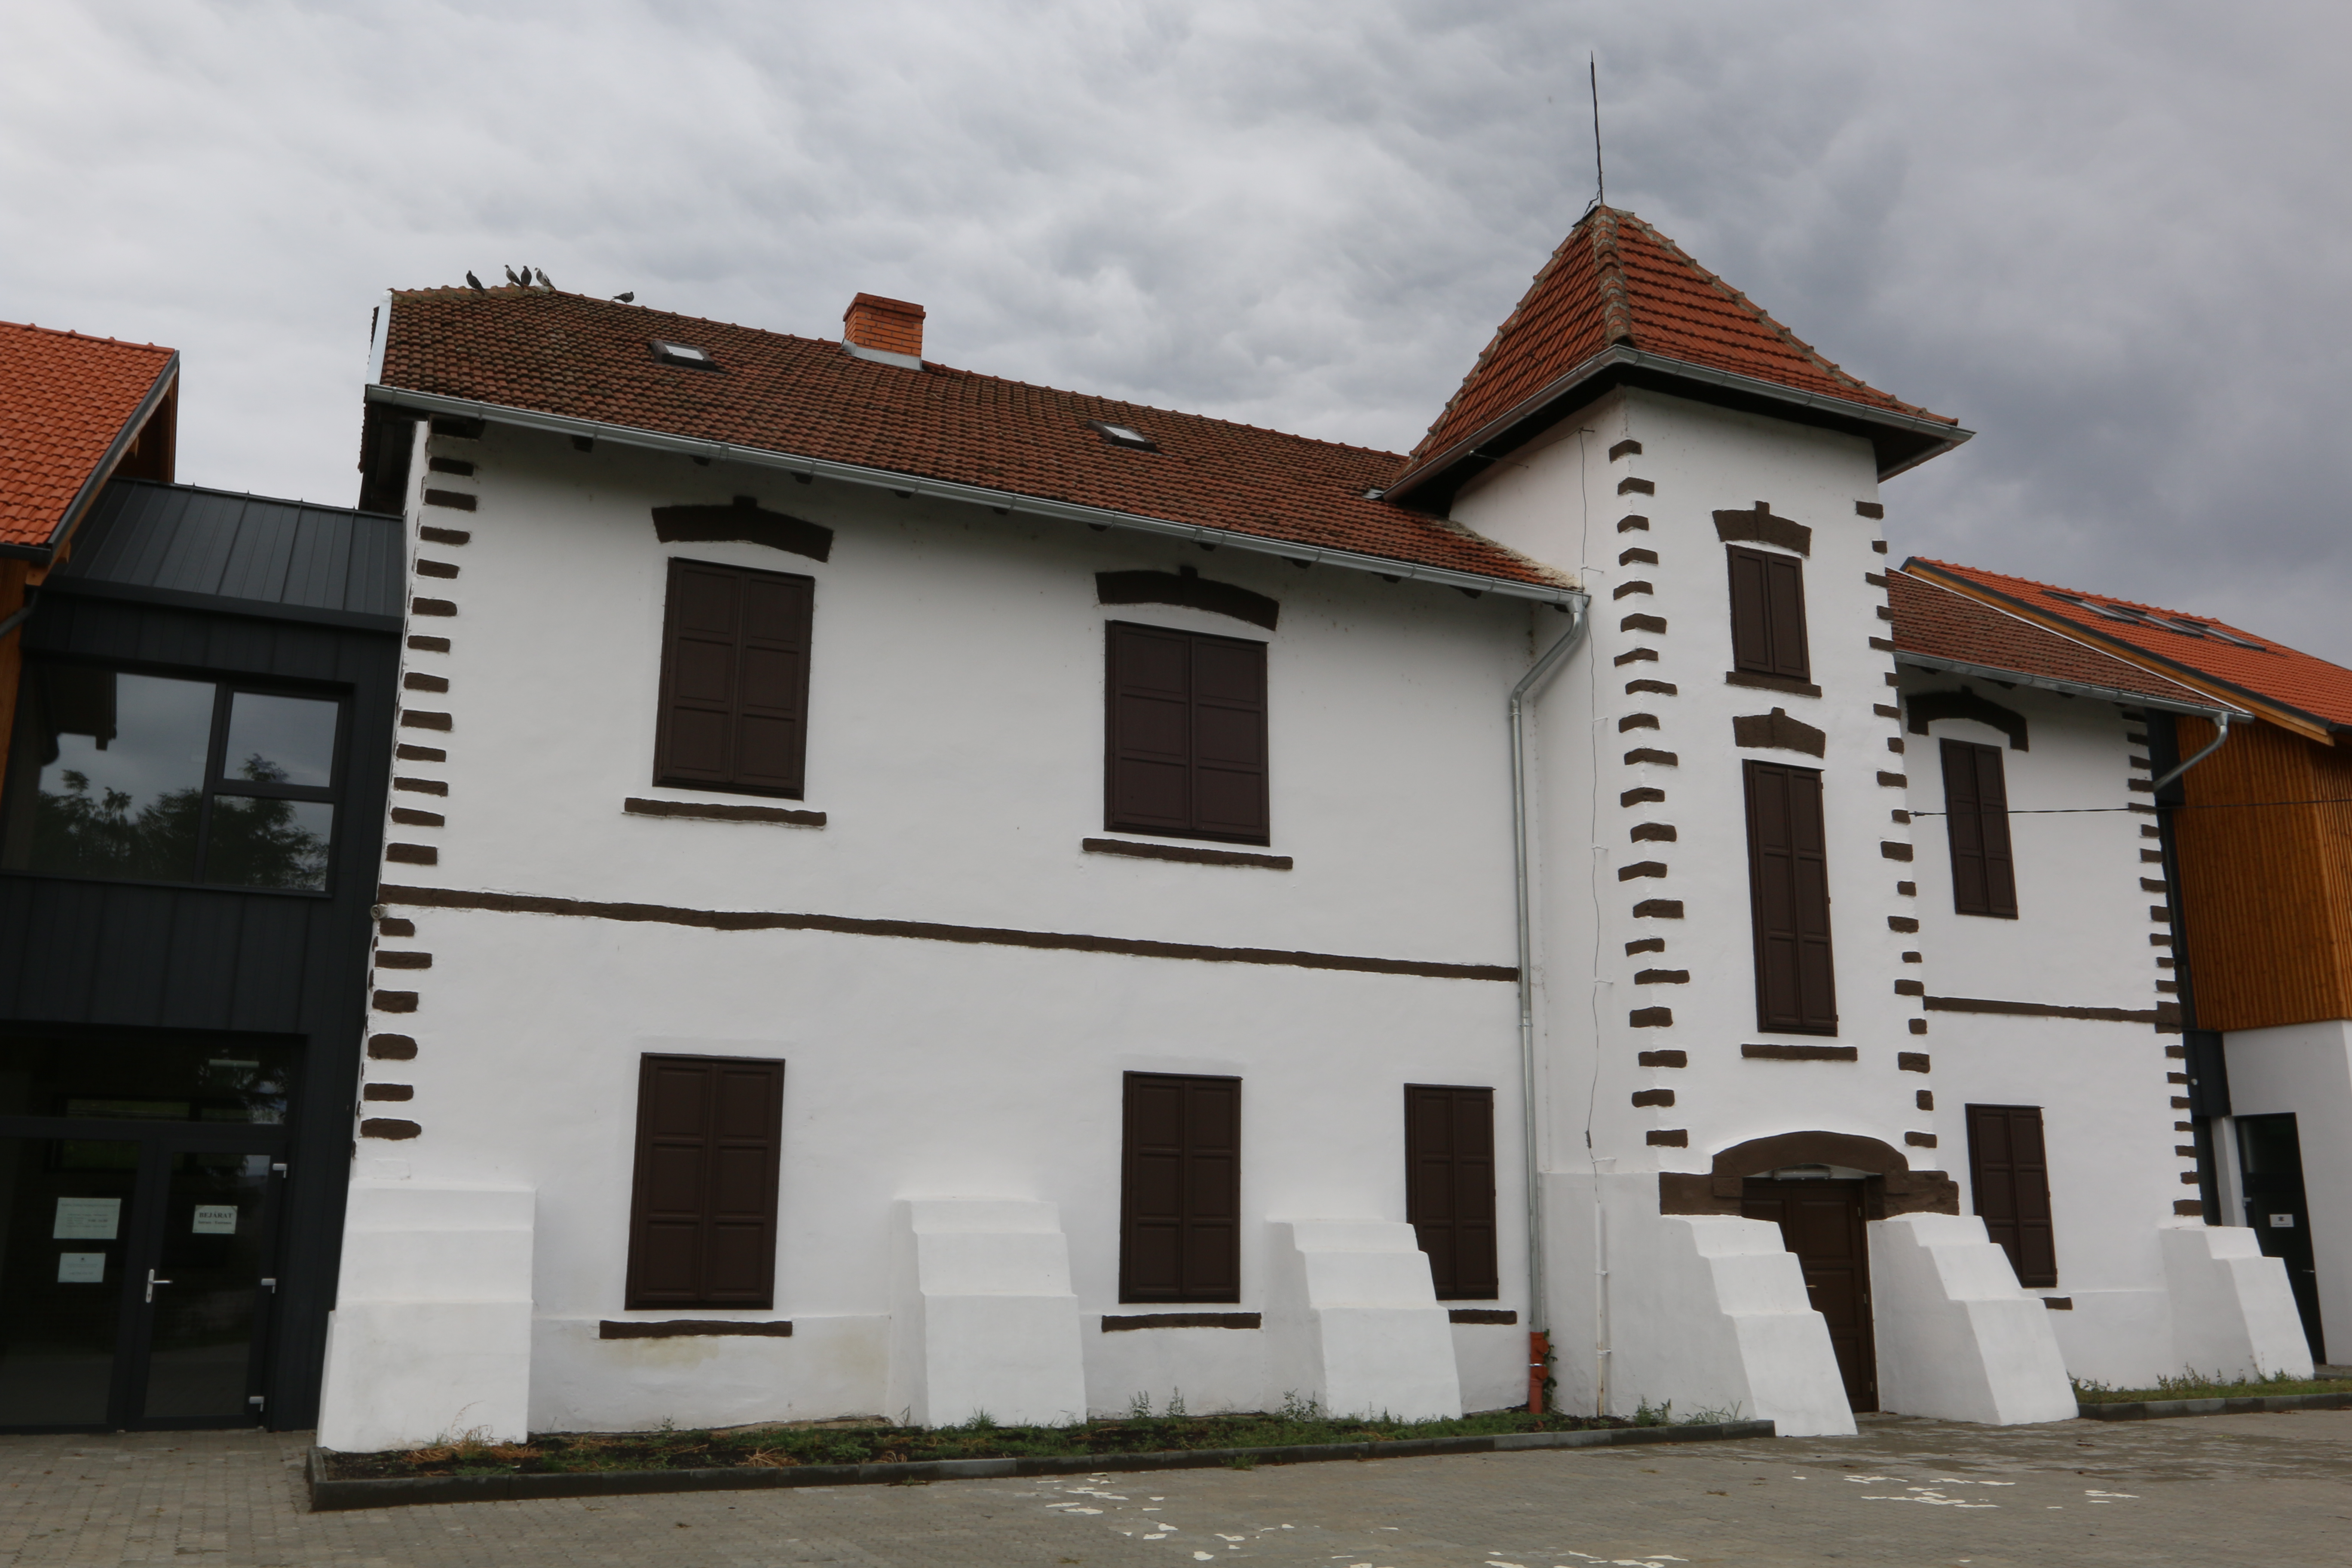 Zoltán Kallós Museum and Ethnographic Center